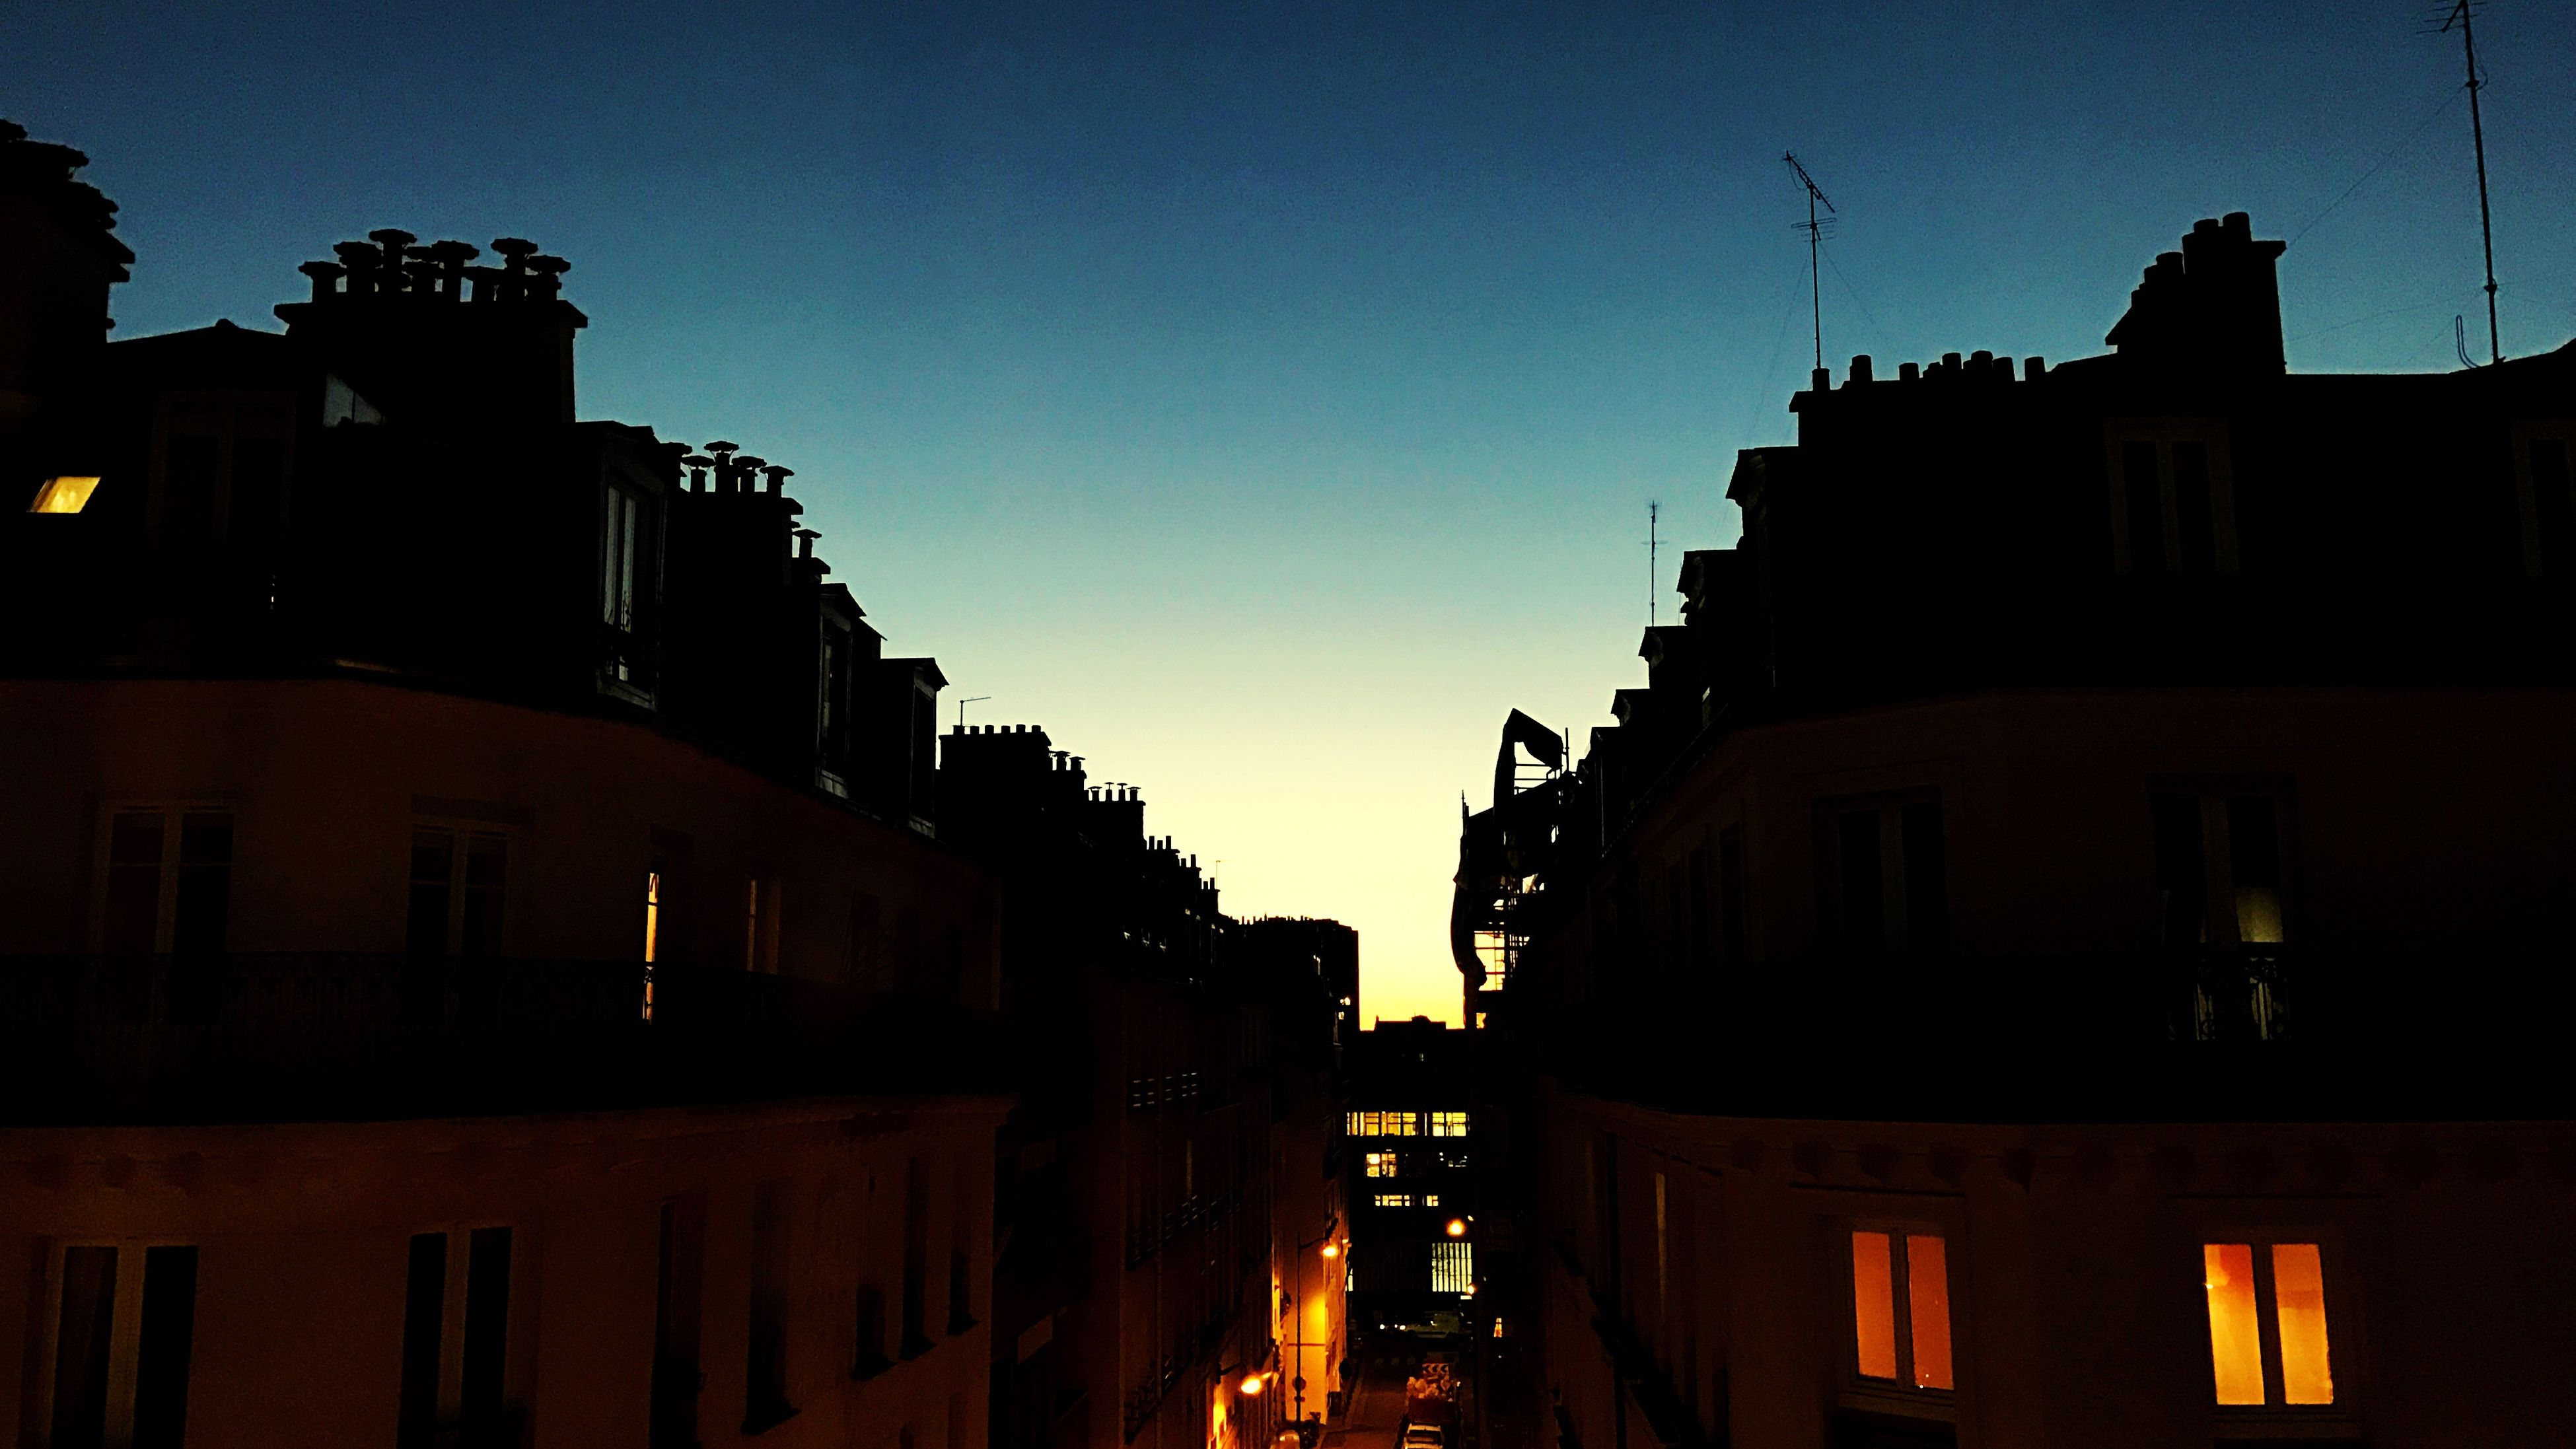 sunset, building exterior, architecture, dusk, built structure, silhouette, illuminated, city, sky, outdoors, night, no people, nature, cityscape